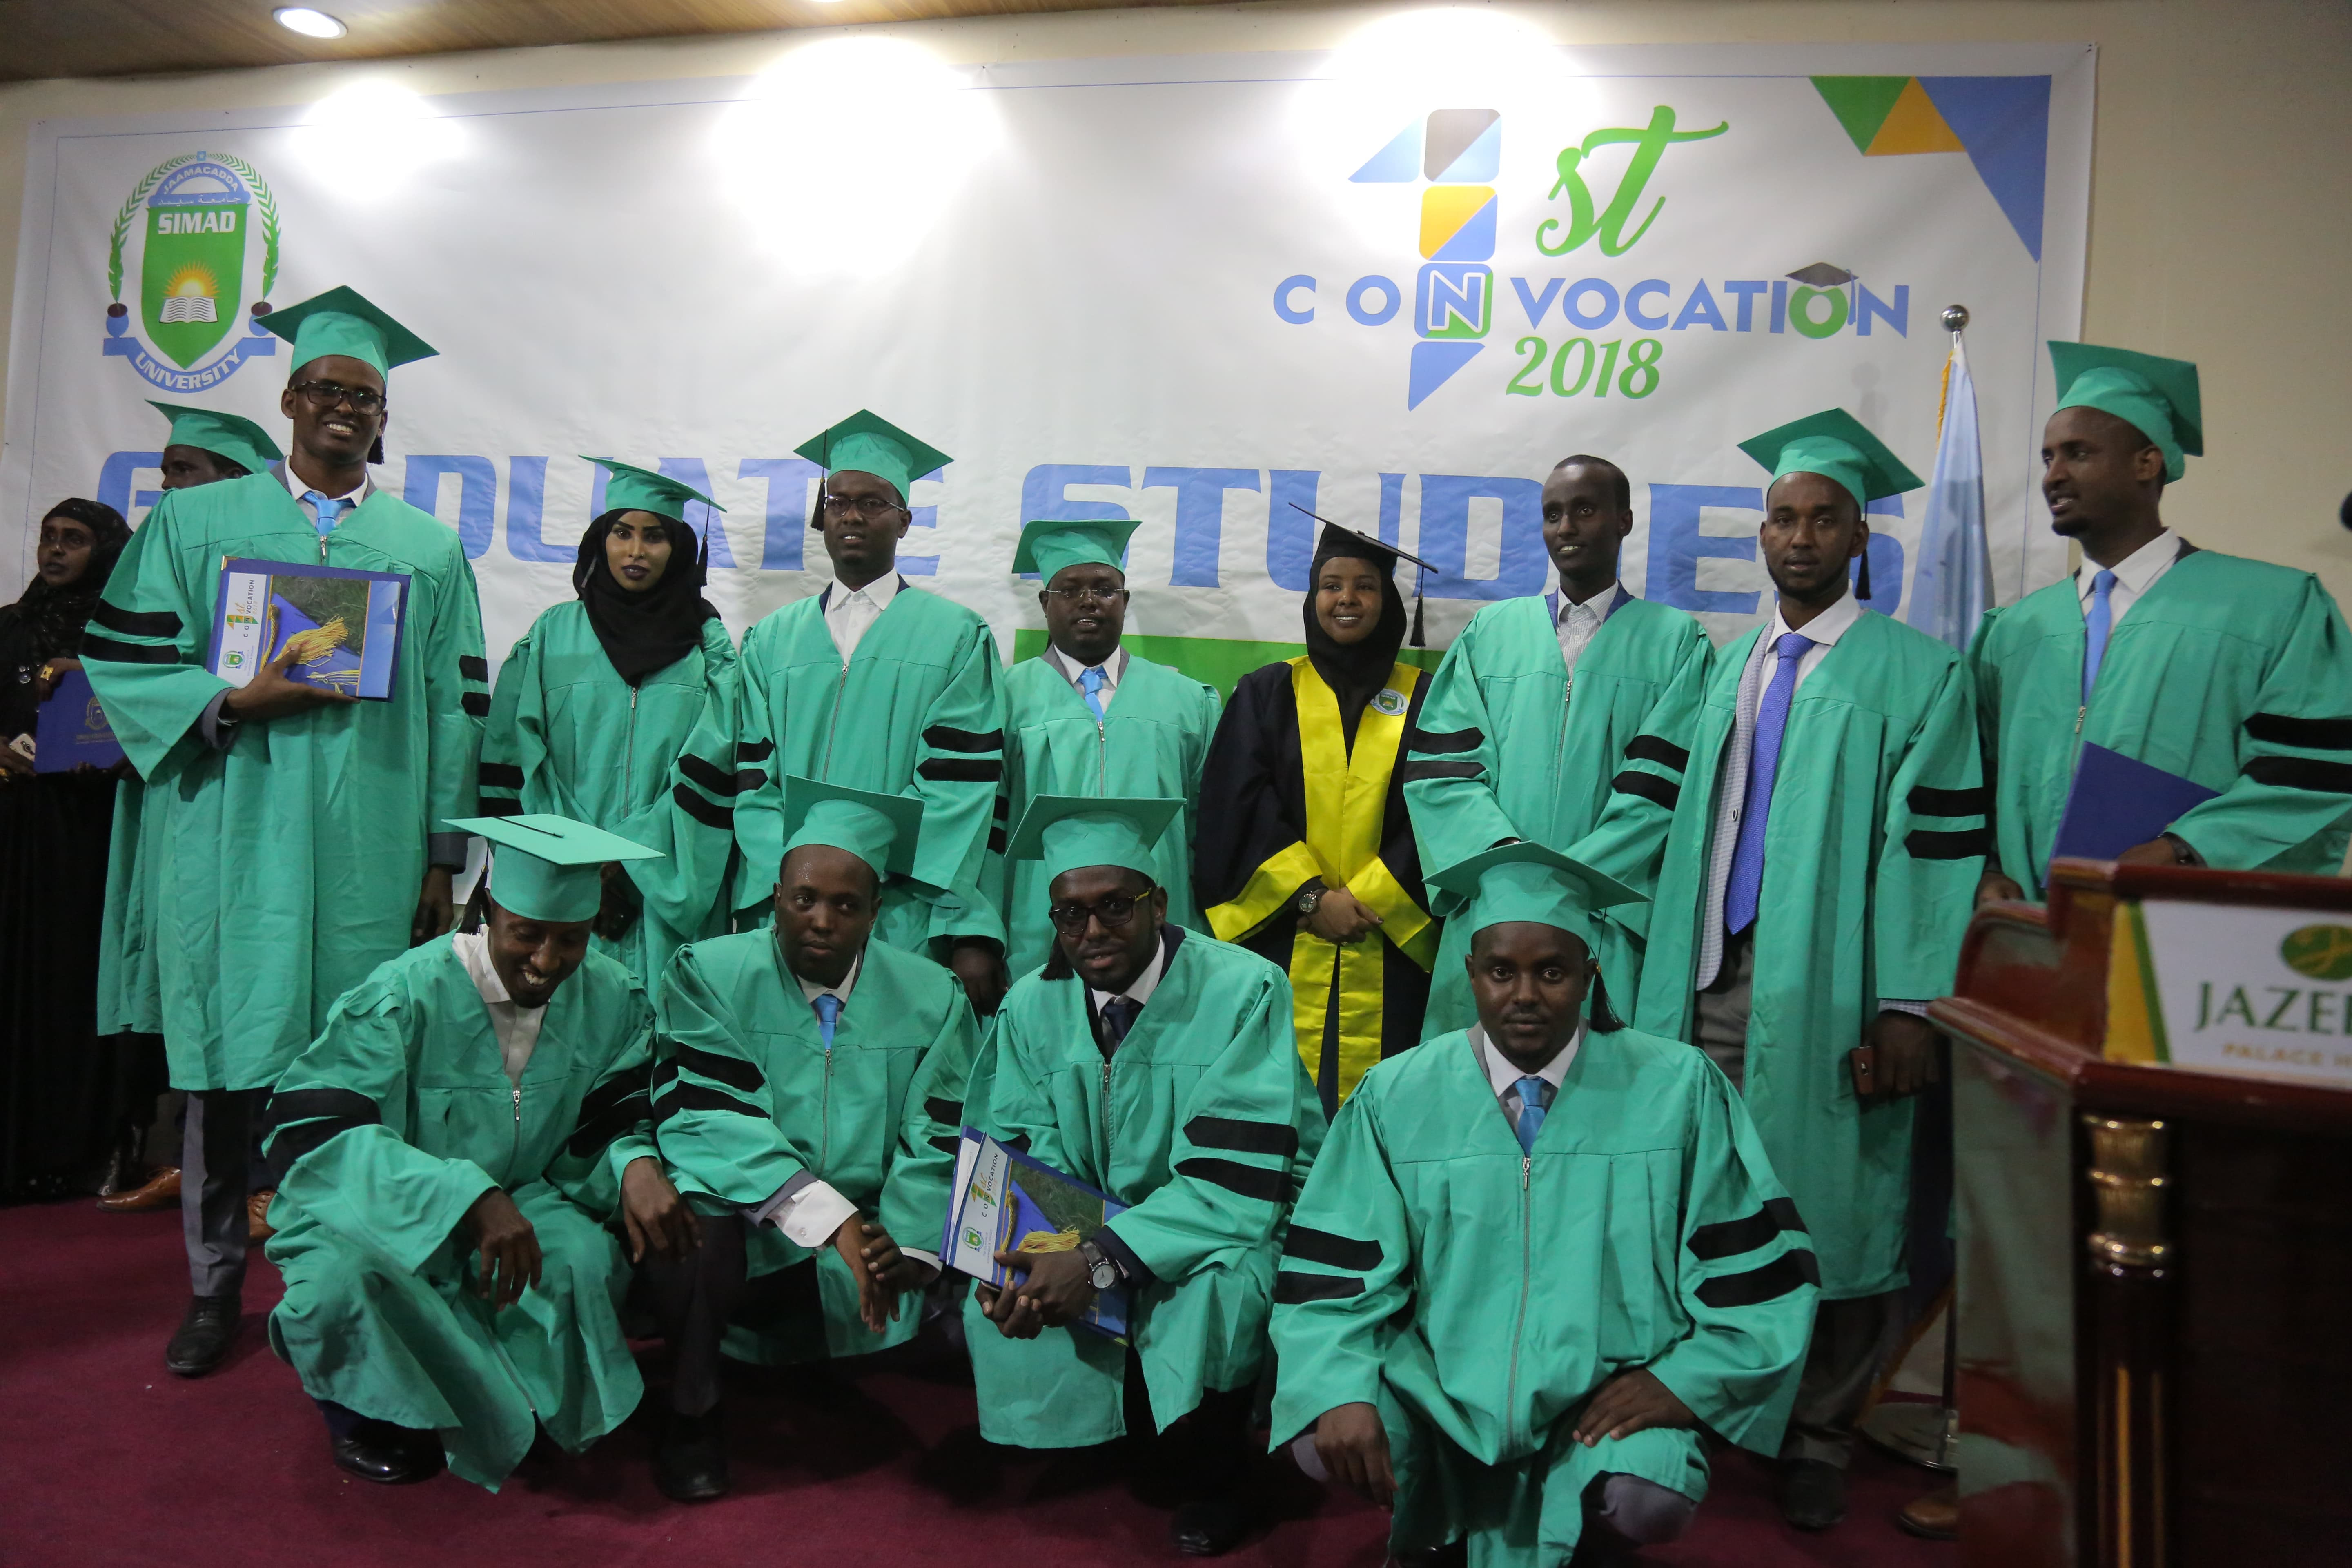 First Convocation of SIMAD Graduate studies